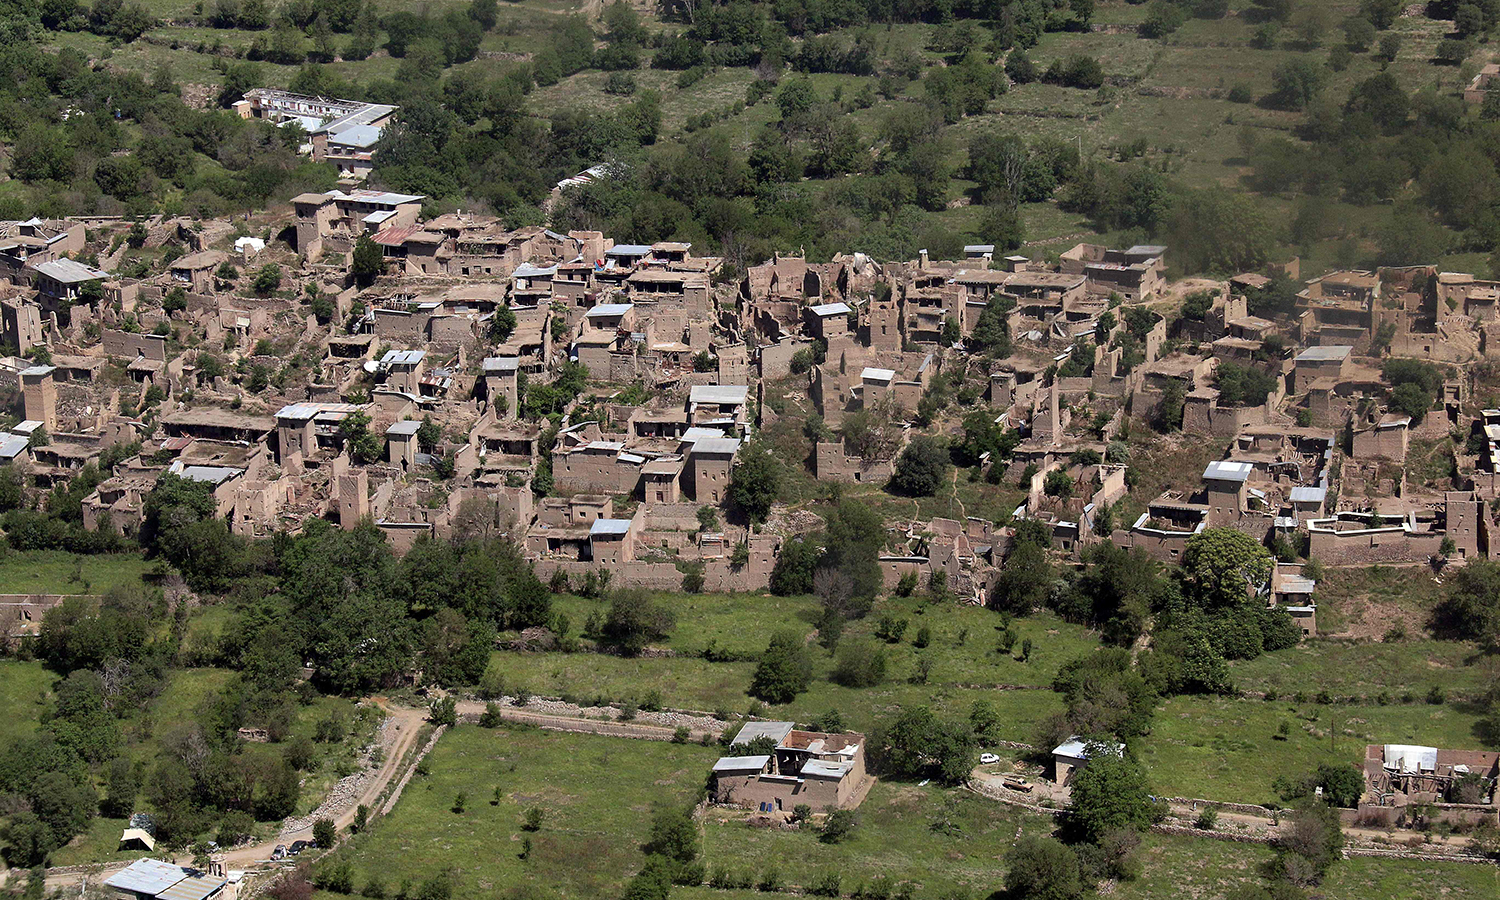 Empty houses whose roofs have been removed by the army during an operation seen in South Waziristan.— AFP